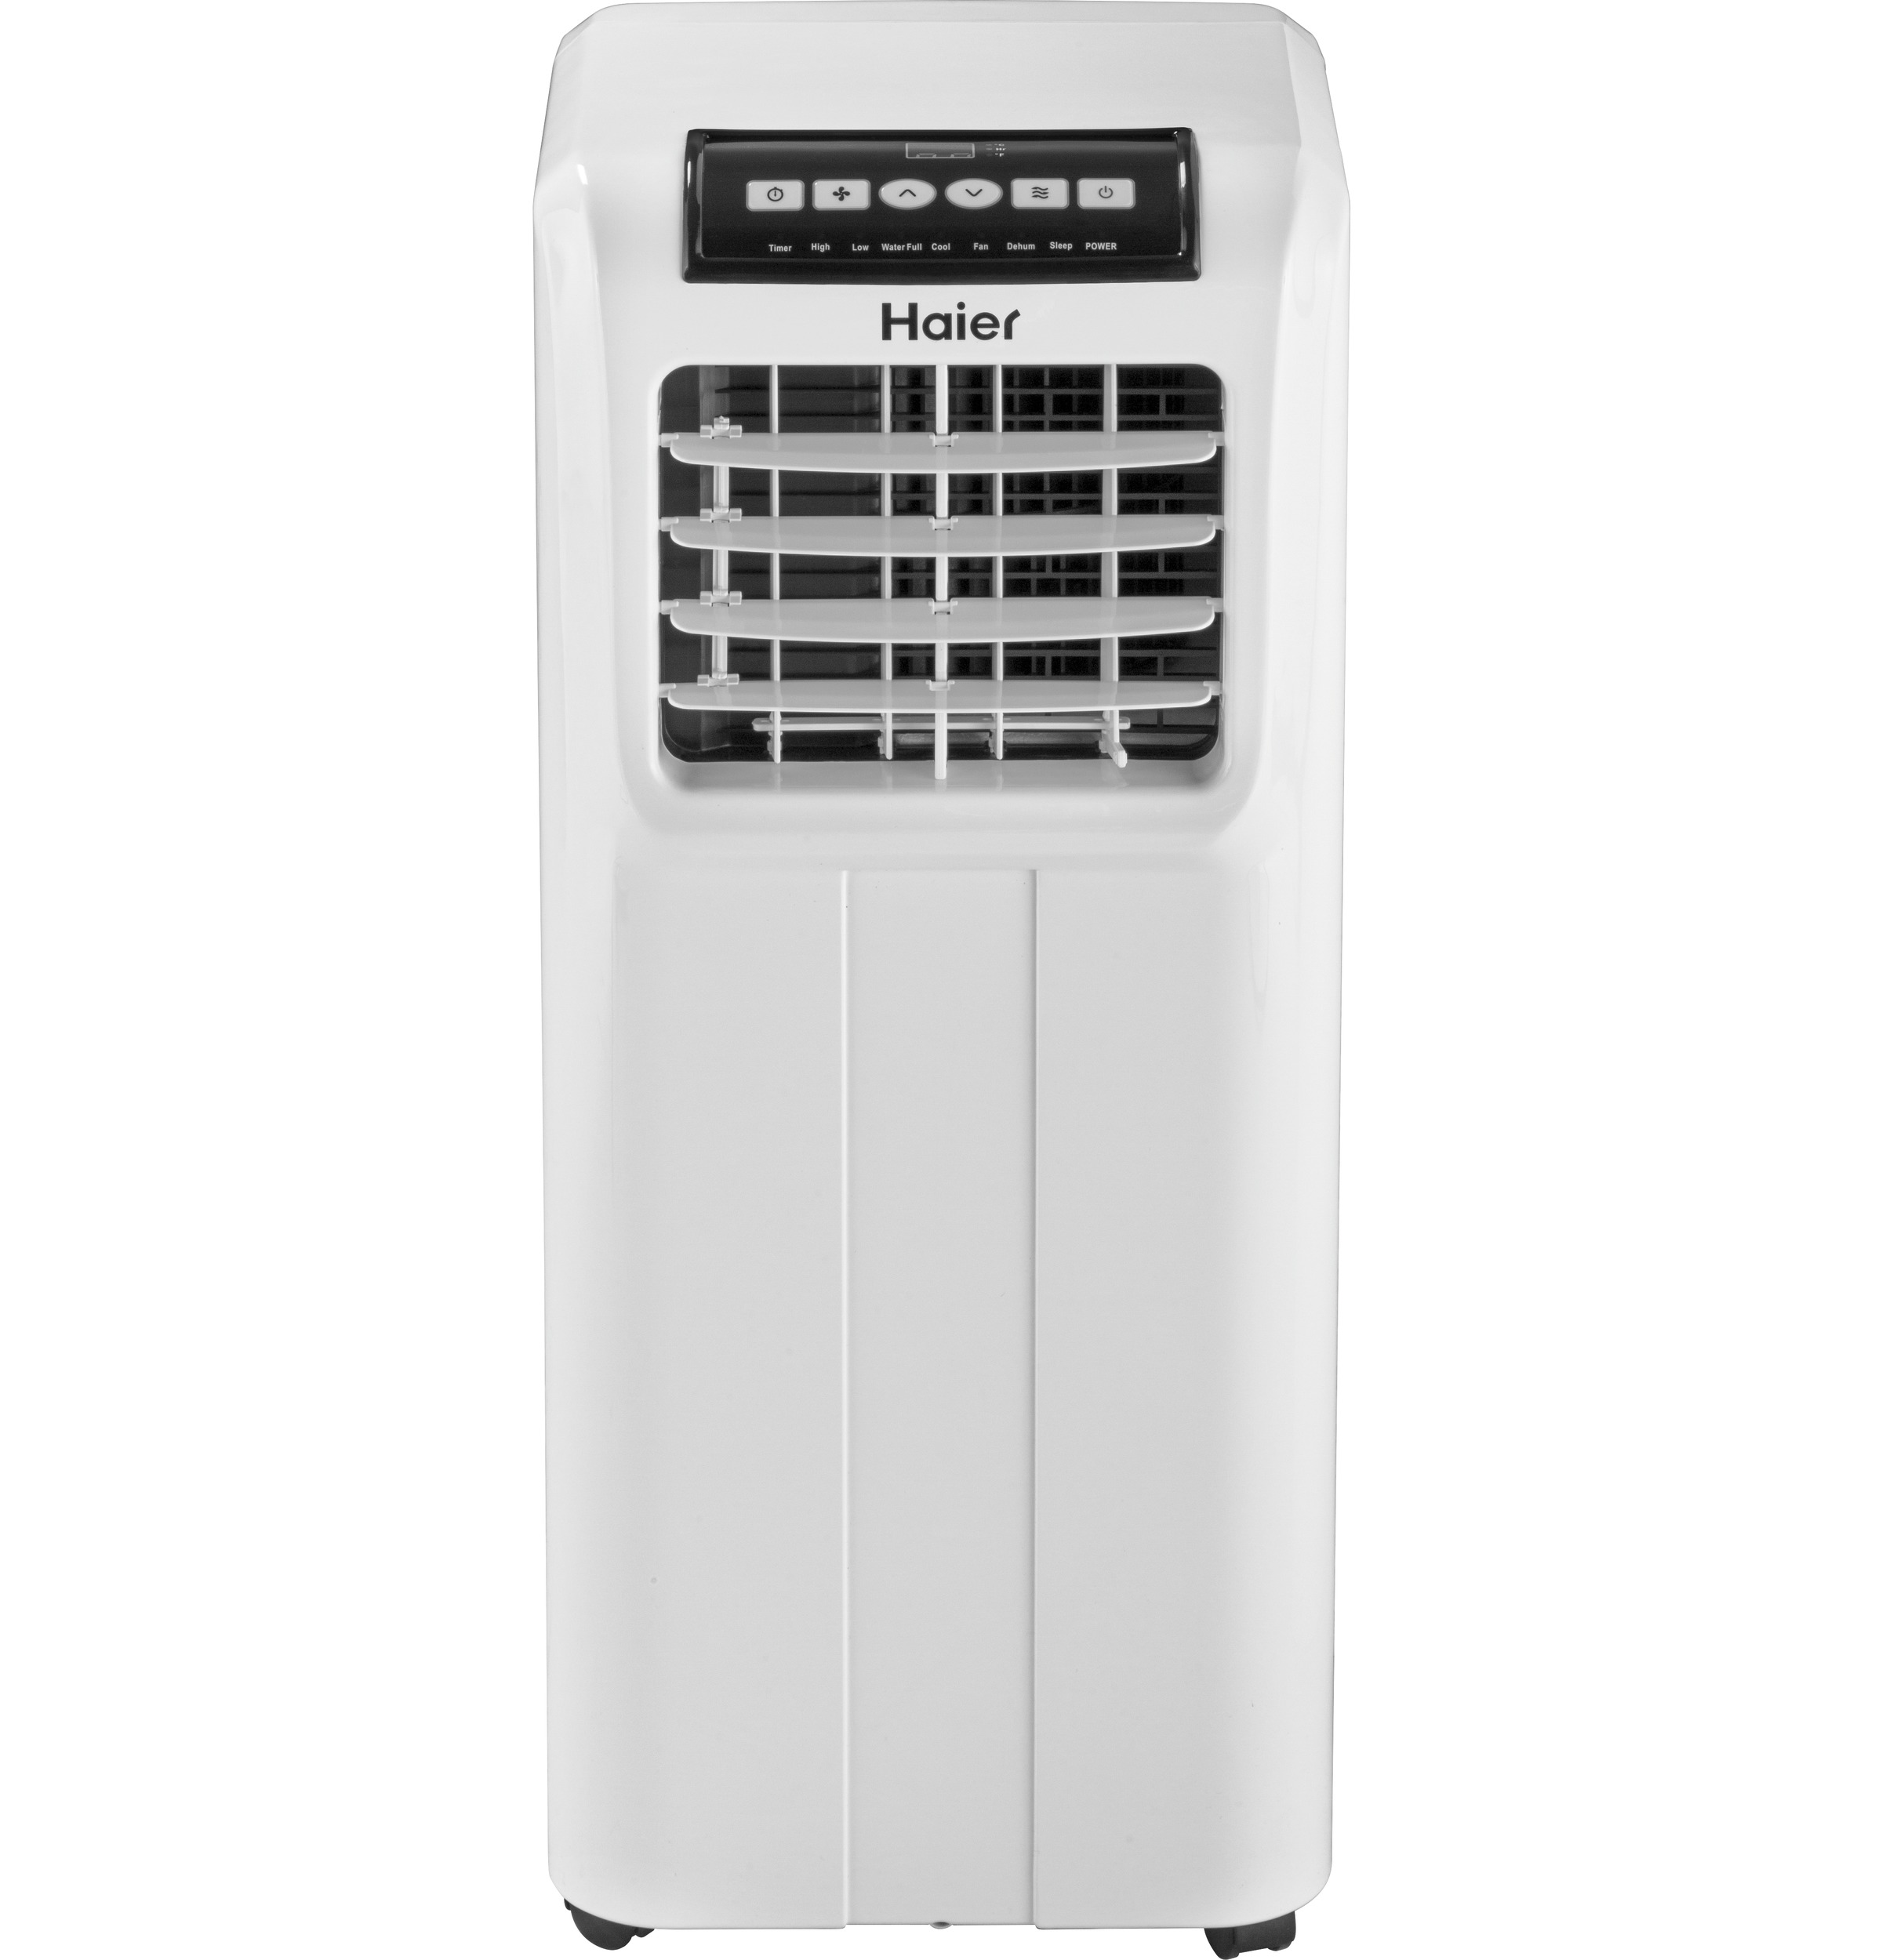 Haier Hpp08xcr 8 000 Btu Portable Air Conditioner With